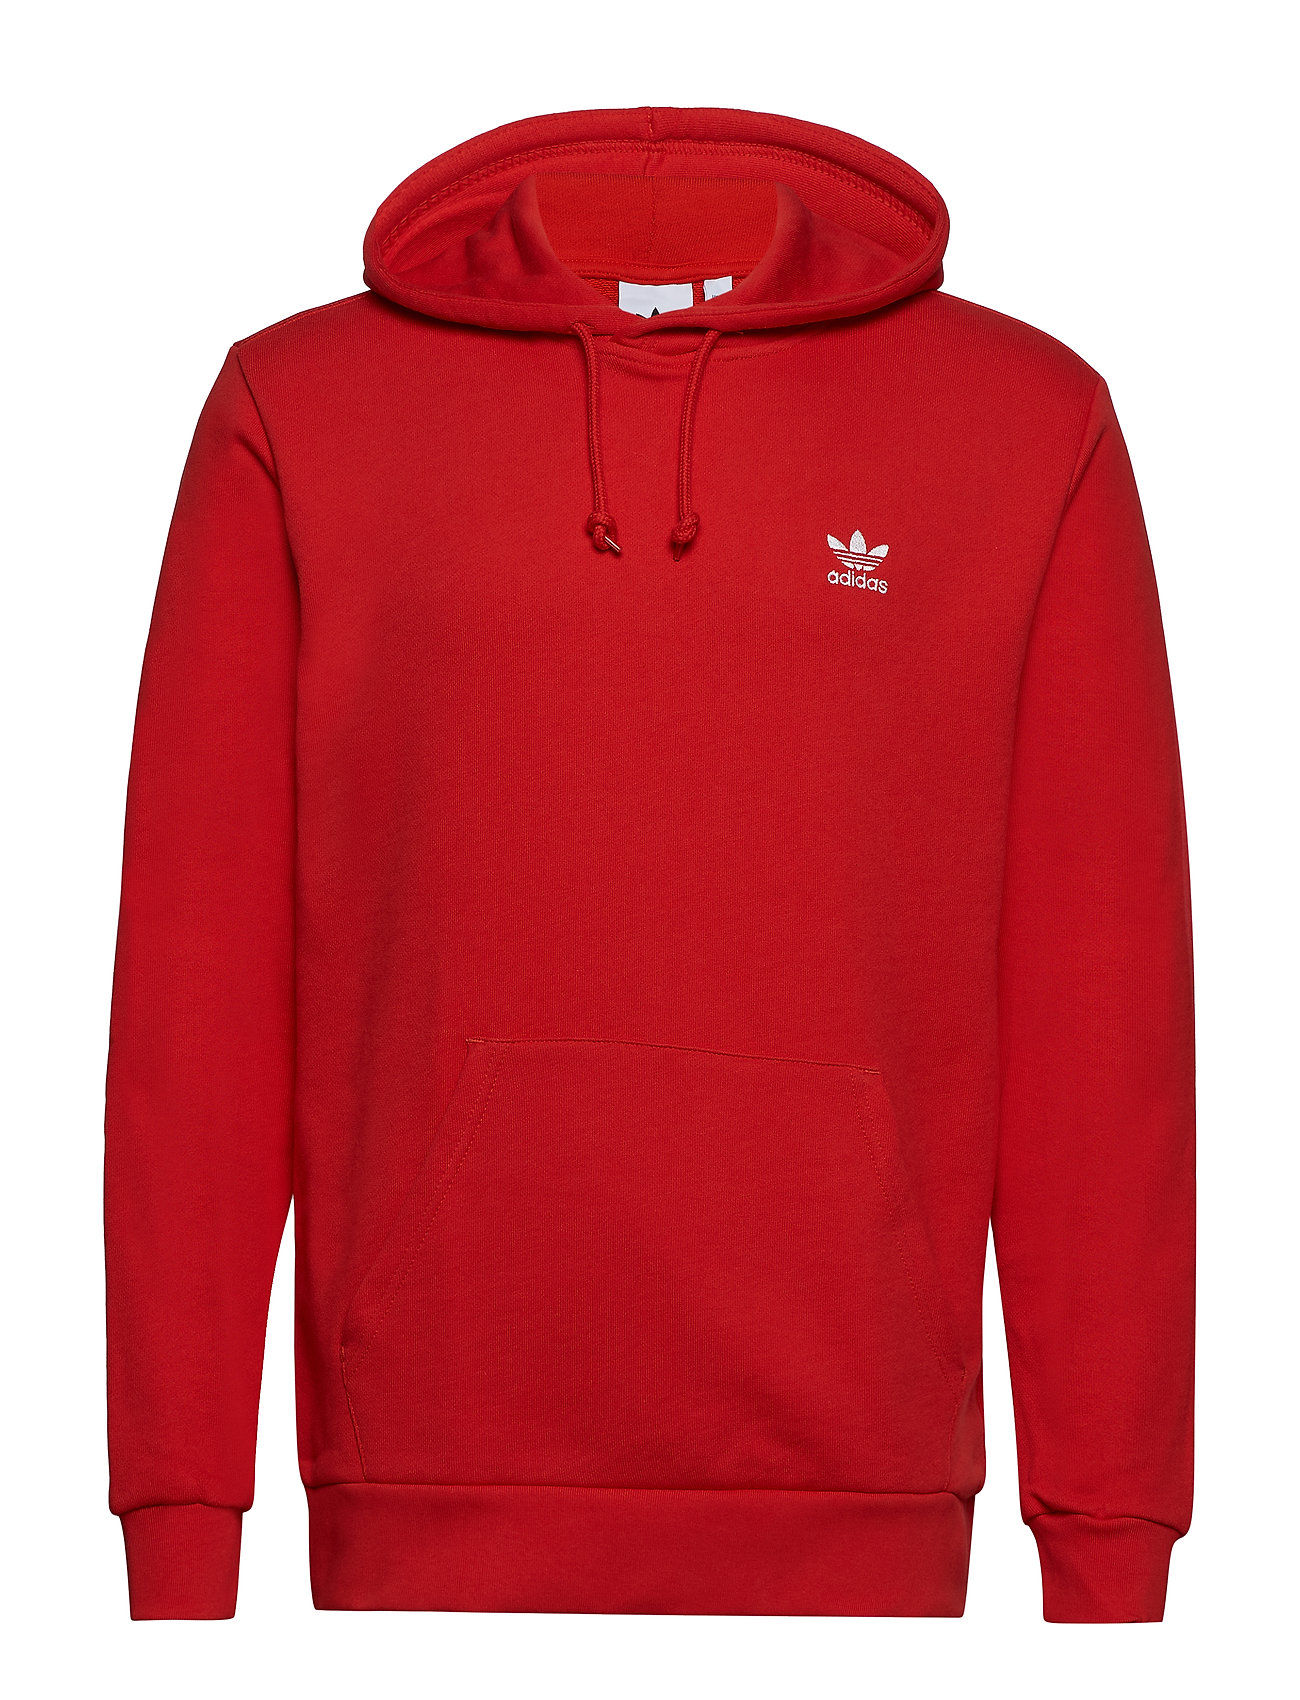 adidas Originals ESSENTIAL HOODY - LUSRED